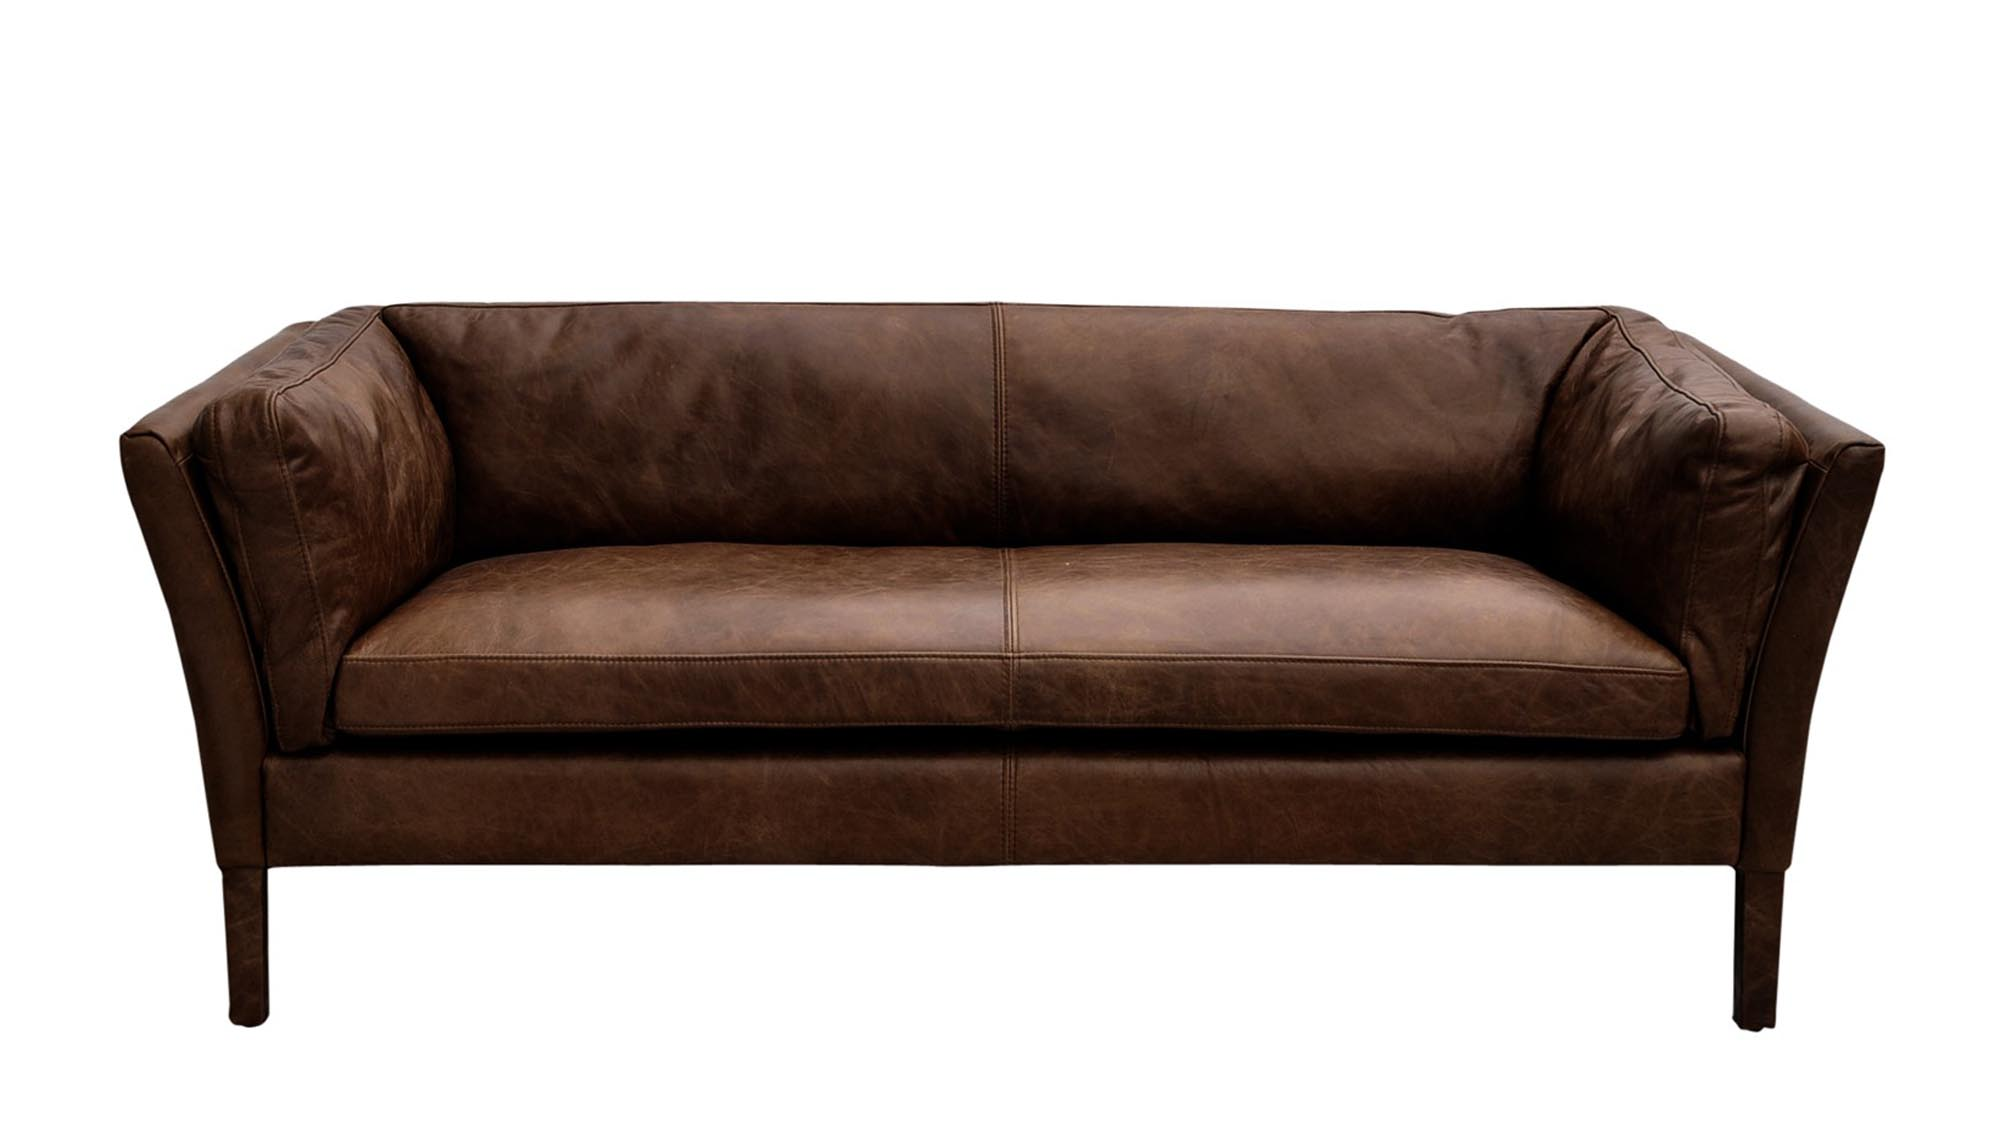 Best leather furniture furniture leather living room for Best furniture sites